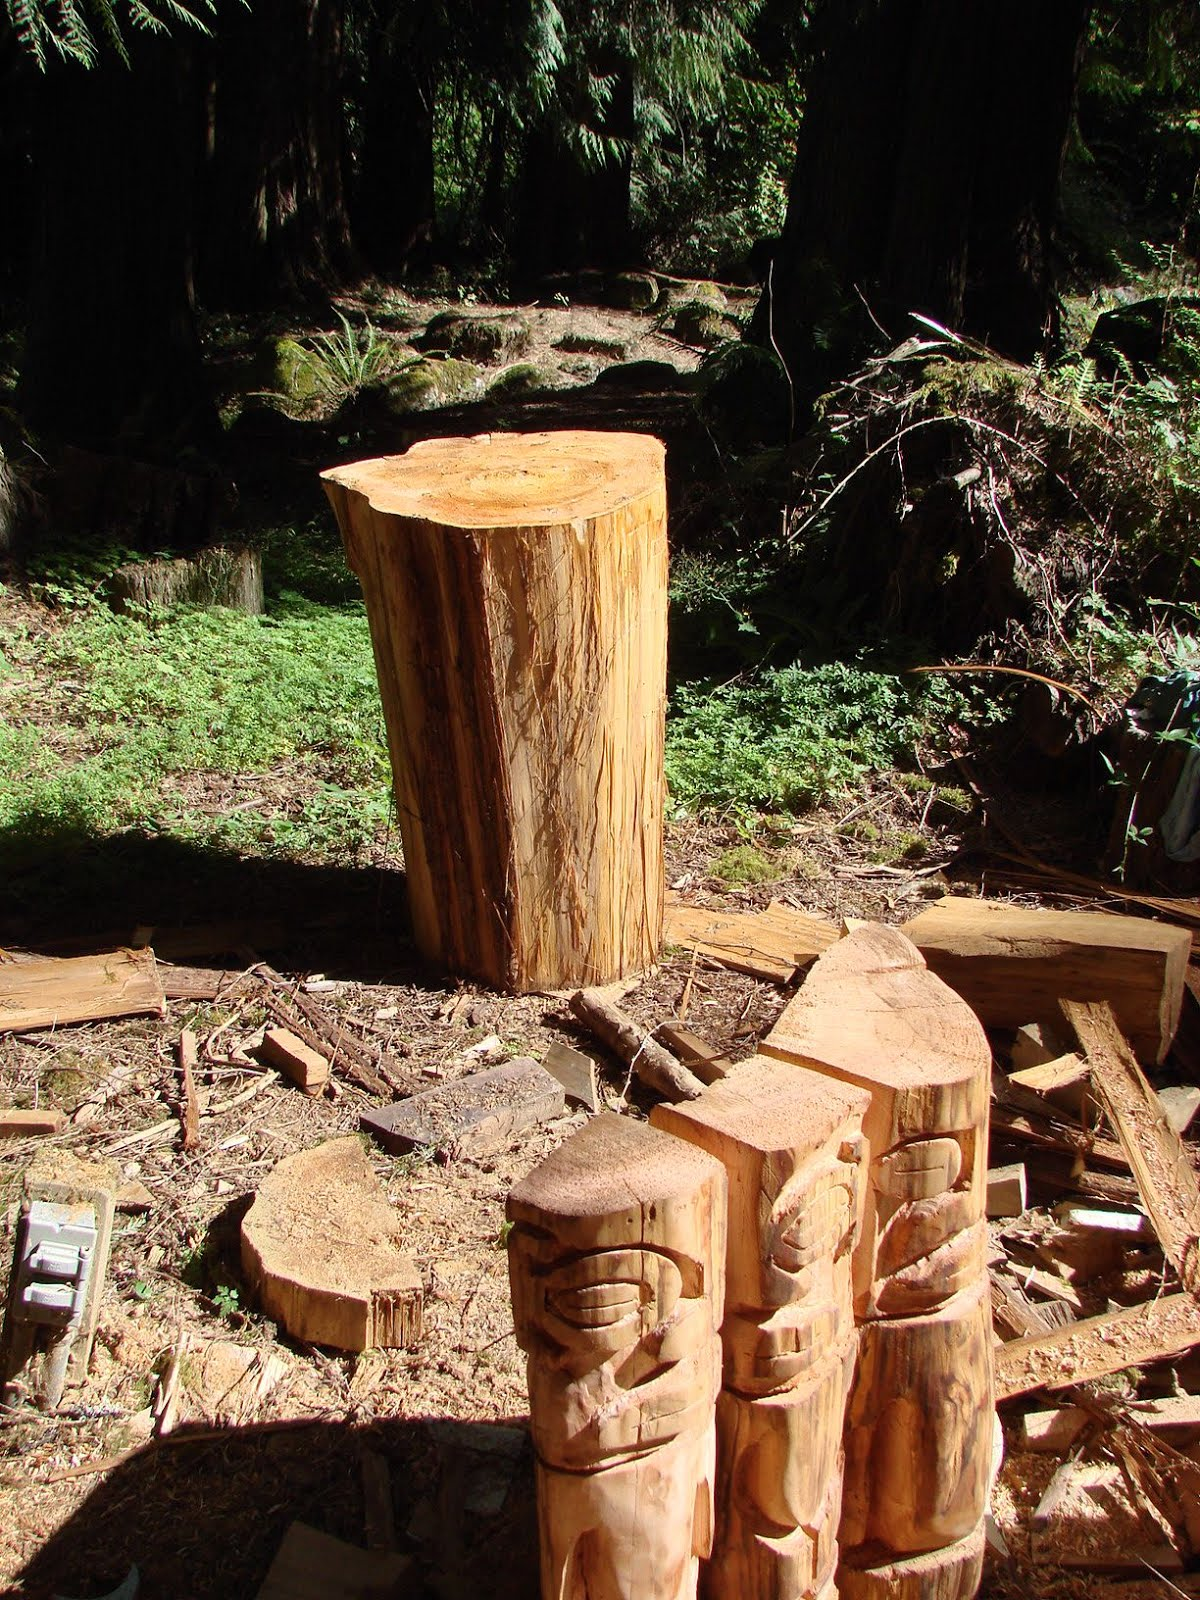 Also stripped the top portion of the same log.